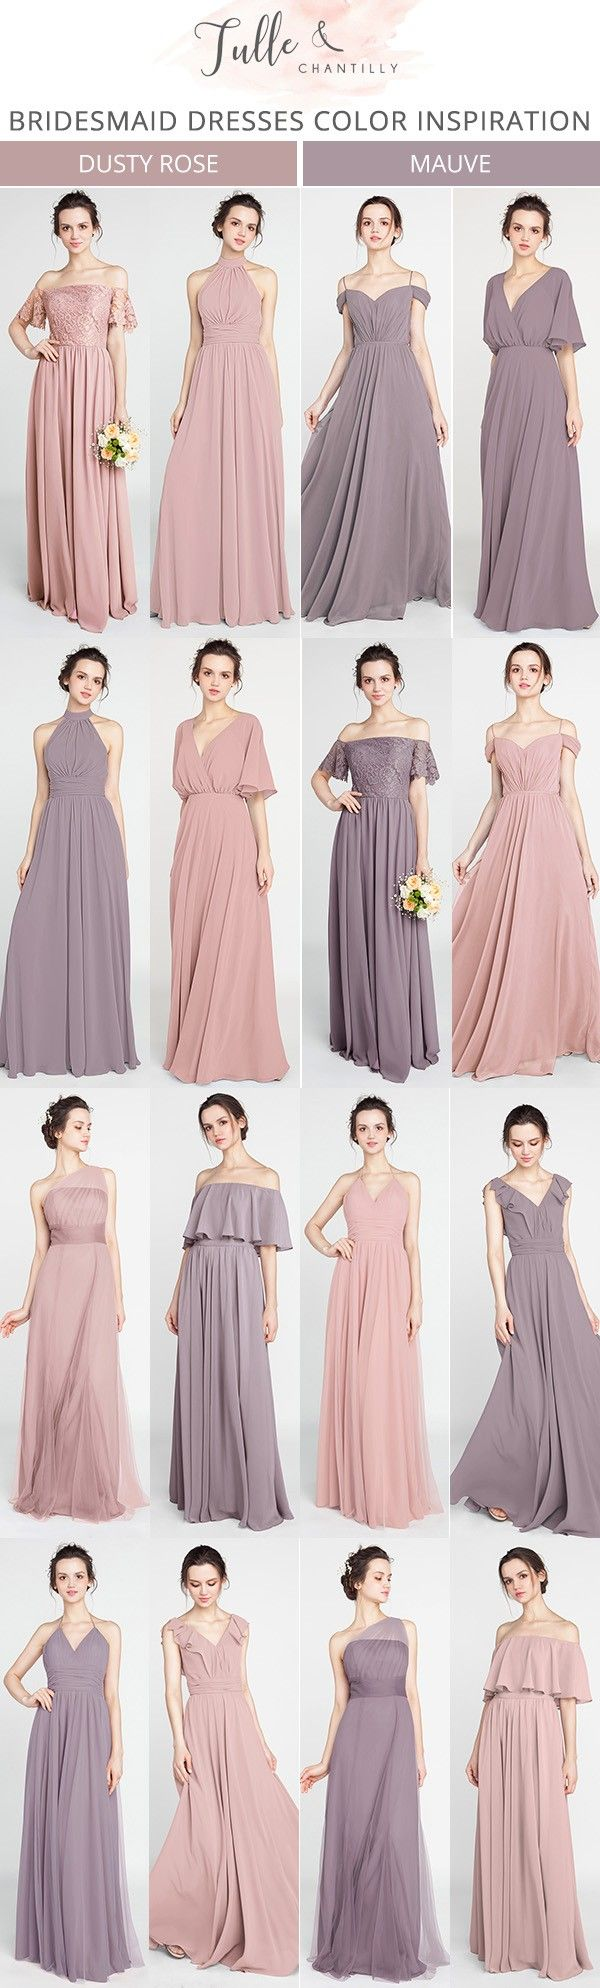 Definition sorbet color palette dress